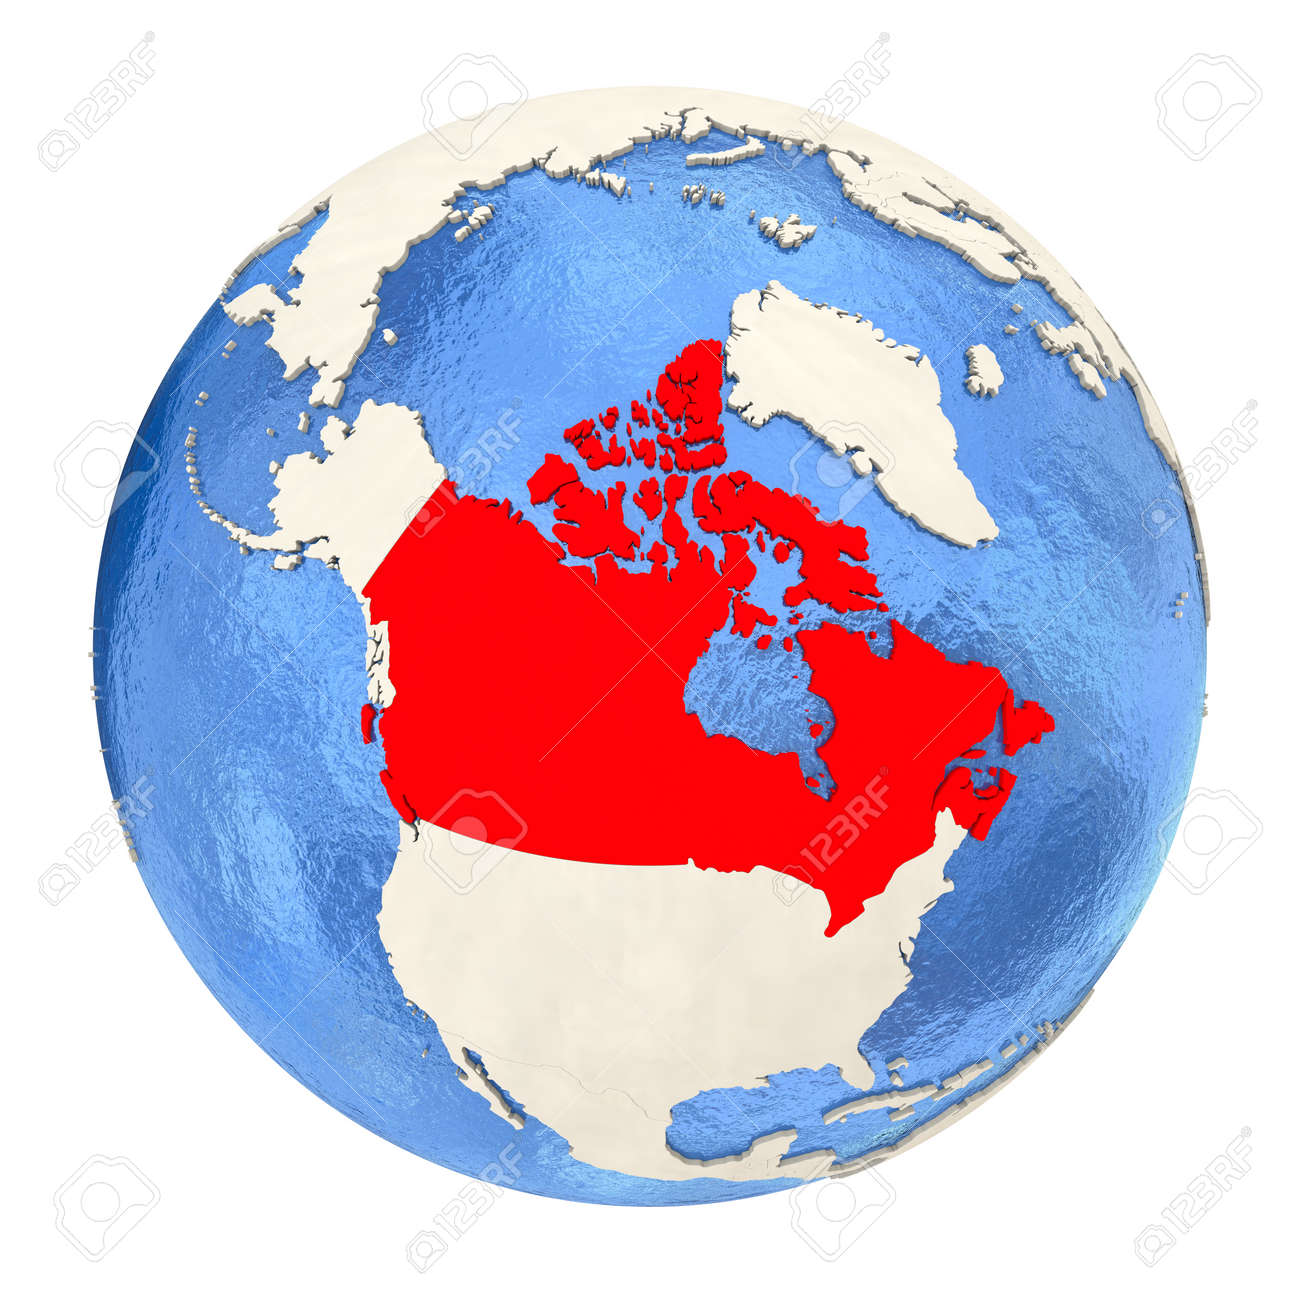 Map Of Canada On Globe.Map Of Canada On Political Globe With Watery Oceans And Embossed